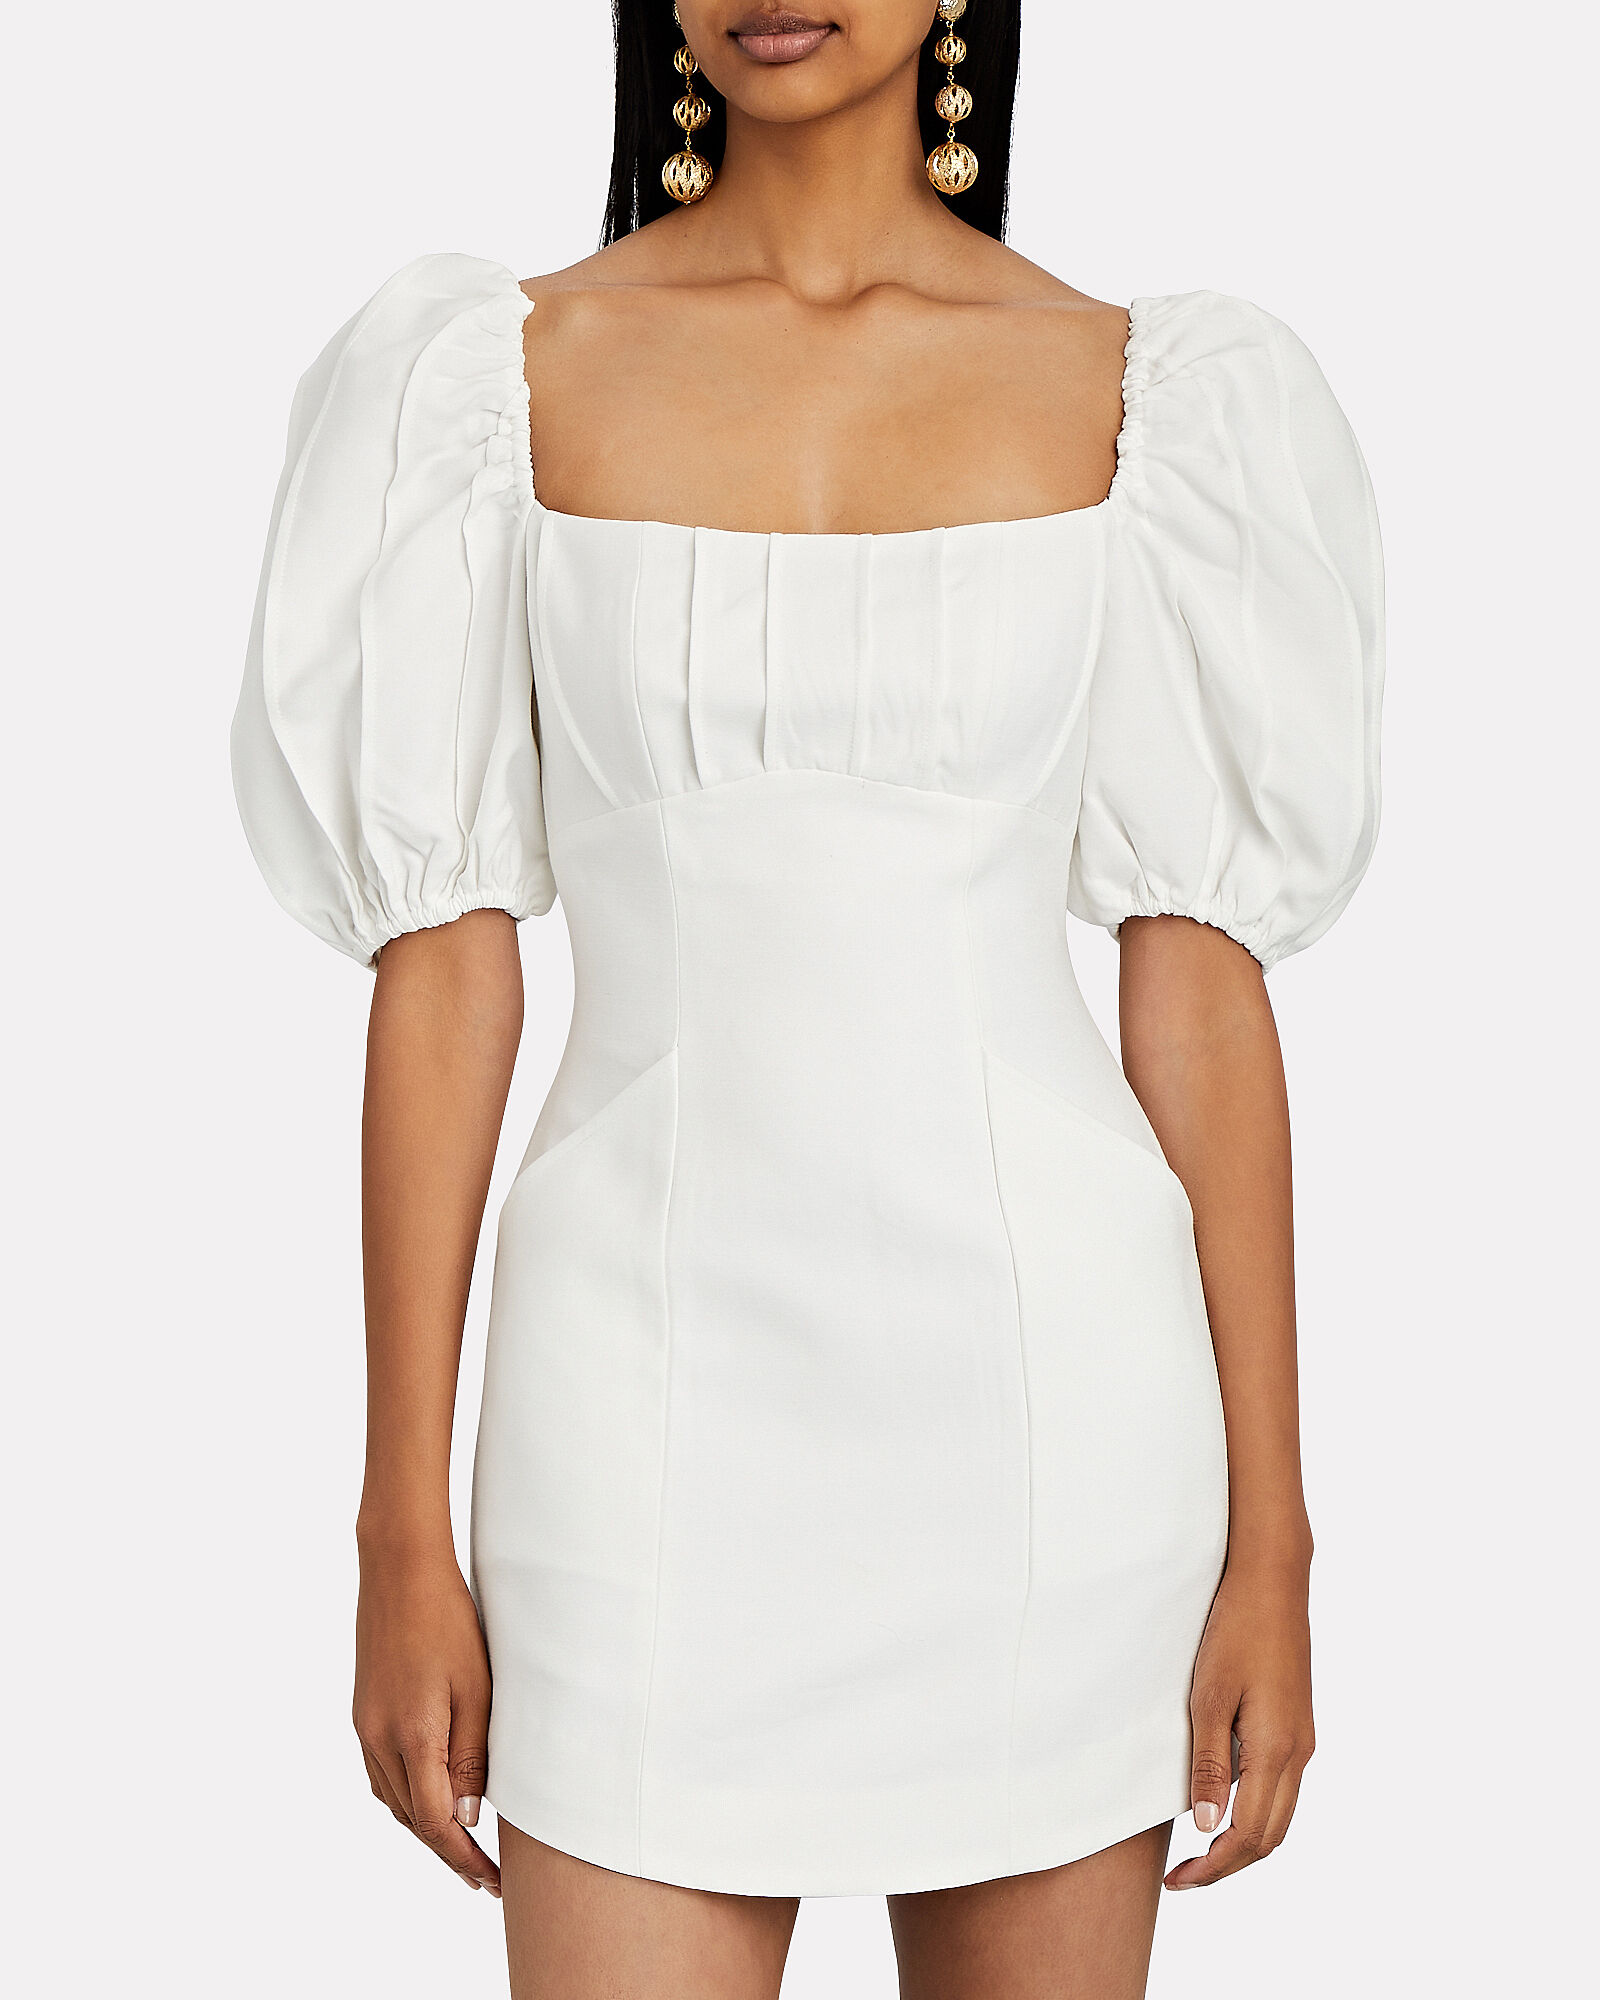 Over Again Puff Sleeve Dress, IVORY, hi-res